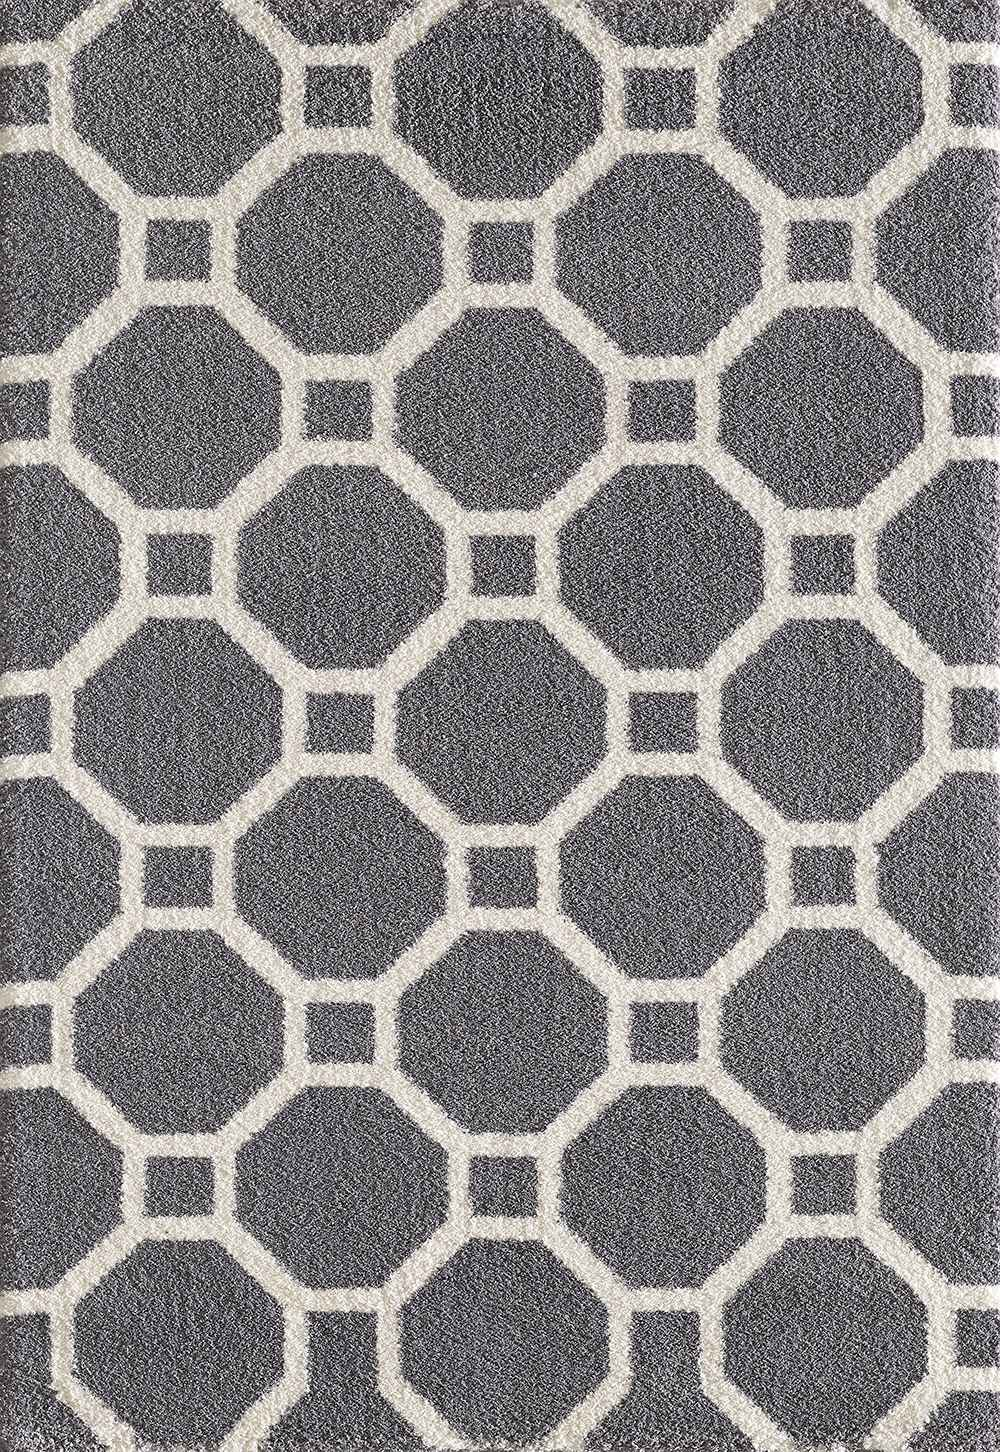 Dynamic Rugs Silky Shag Geometric Grey 5903 Area Rug